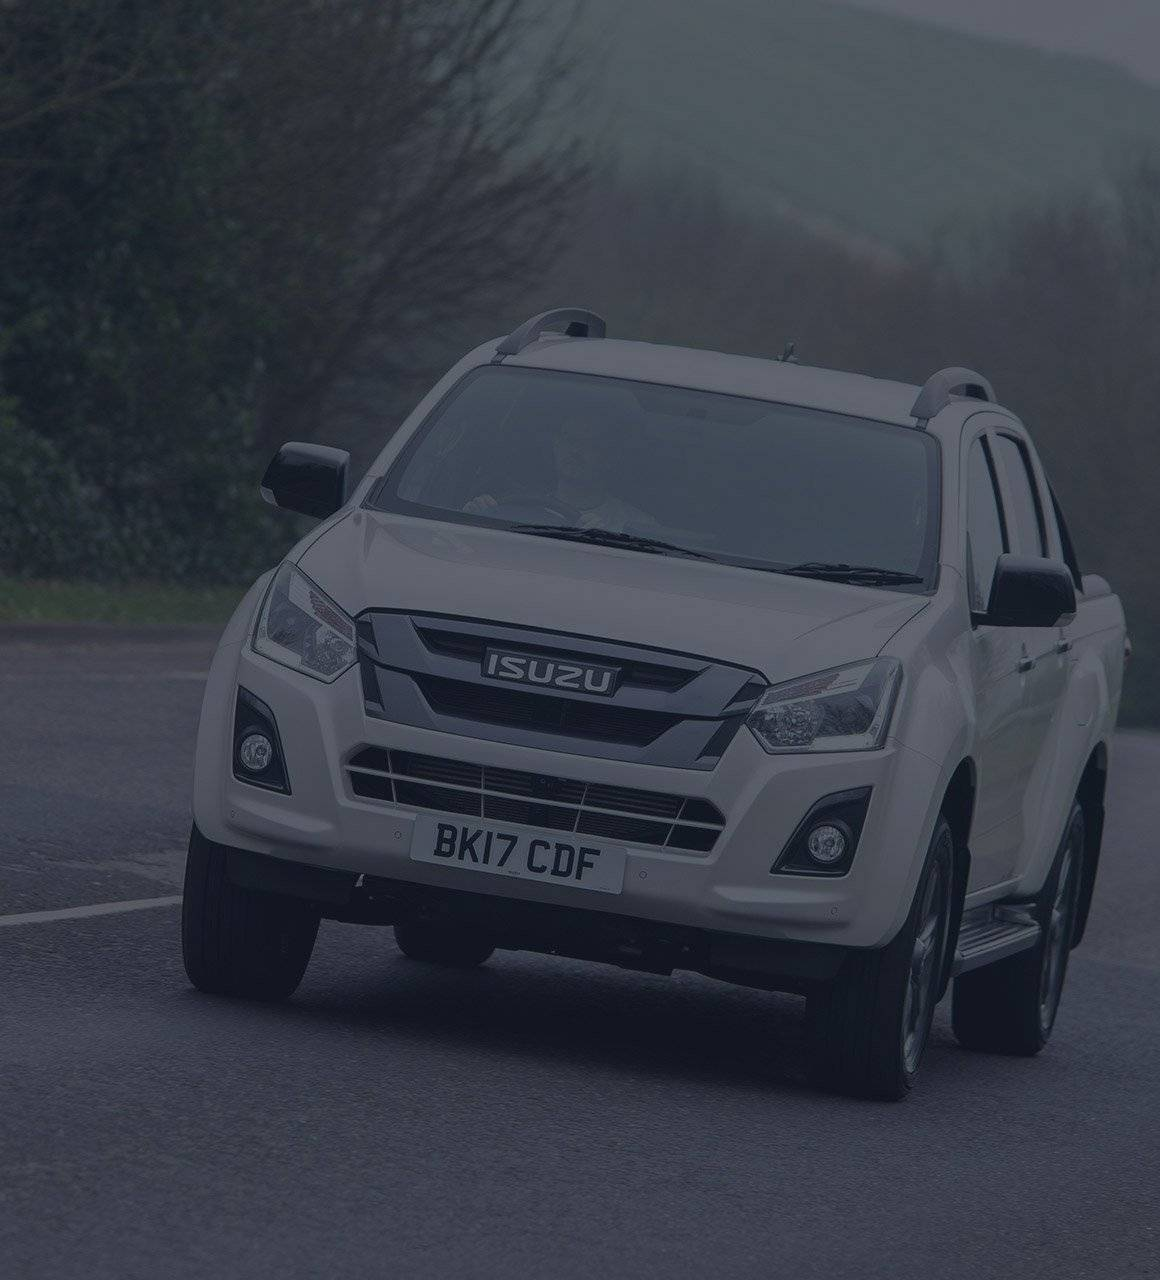 Compare Isuzu insurance costs for all models